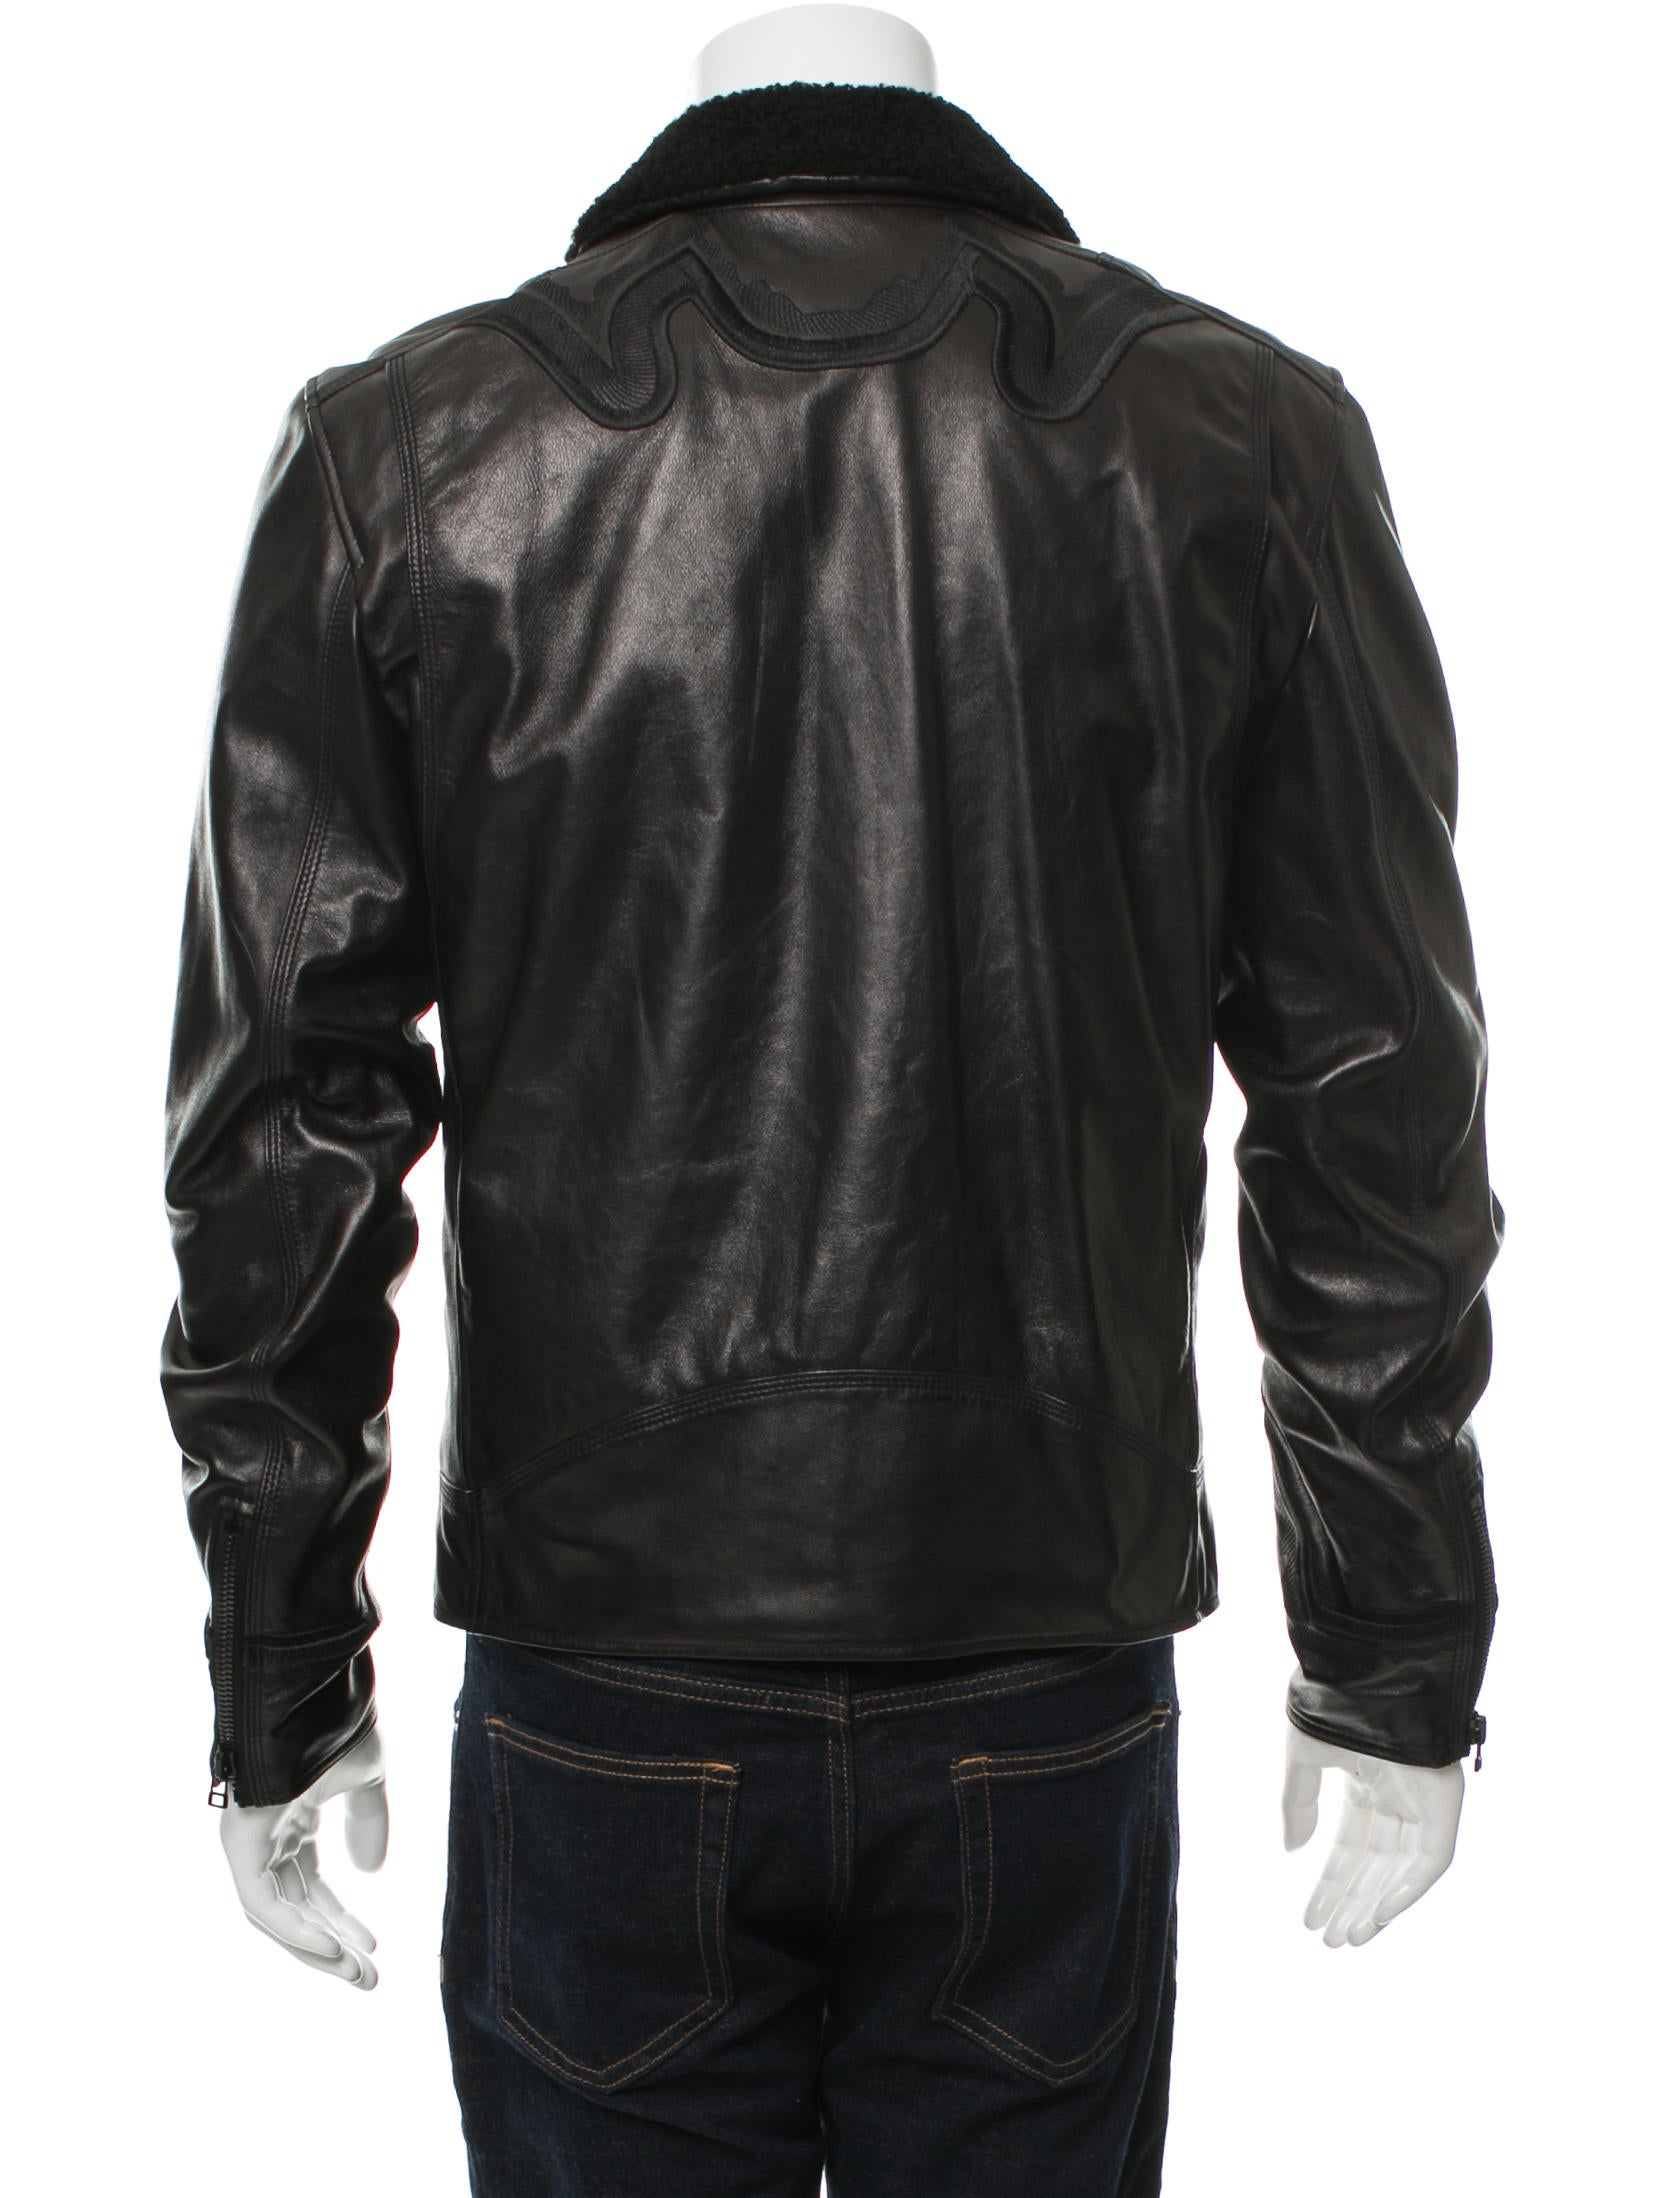 Phillip lim mens leather jacket